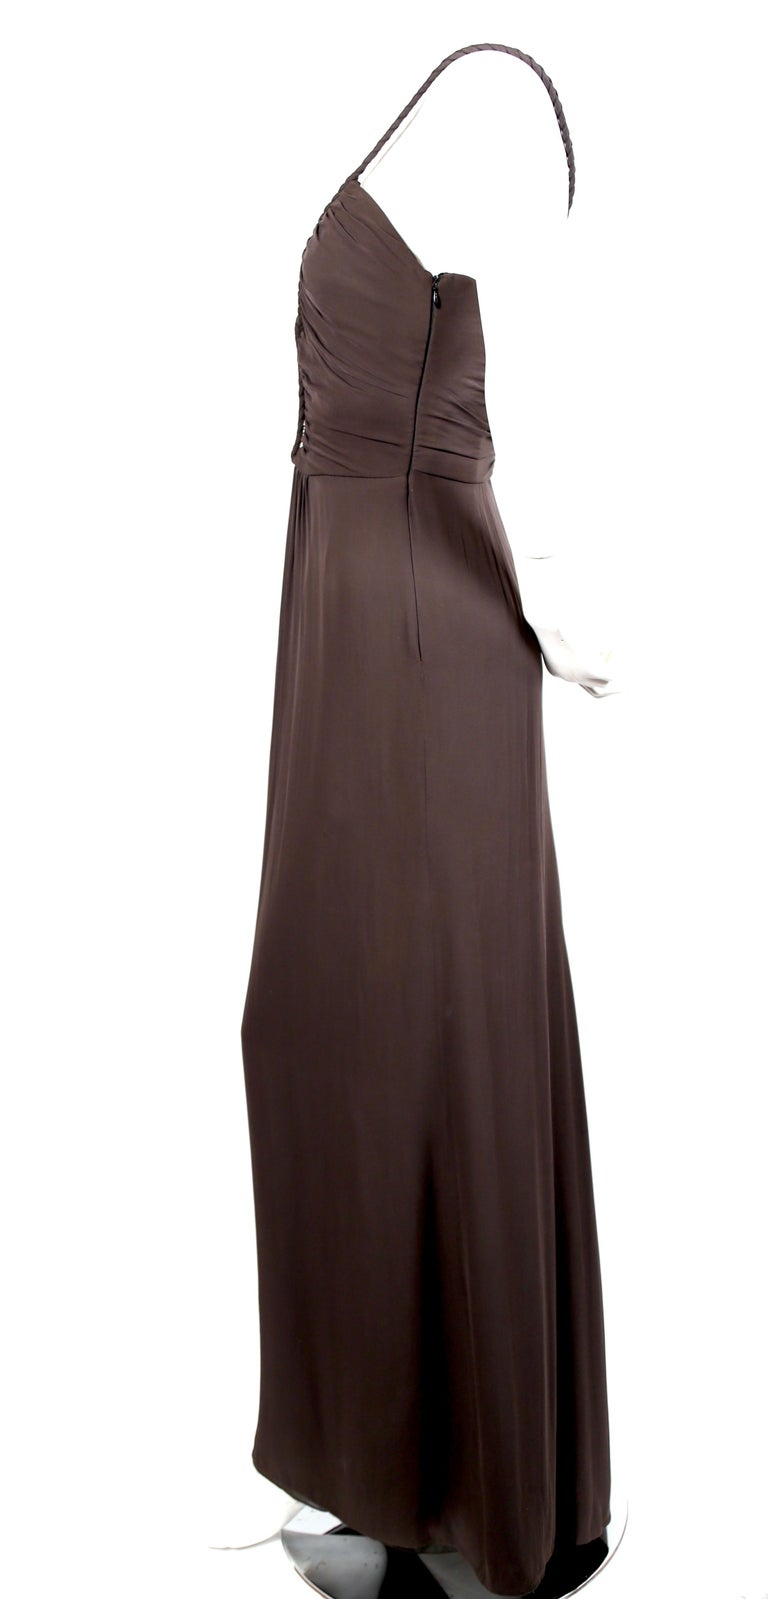 Dark-brown, full-length, Grecian silk dress with braided straps designed by Giorgio Armani for Armani Collezioni dating to the 1990's. Labeled an Italian size 40 or US 4. This dress best fits a modern U.S. size 2-4. Approximate measurements: bust